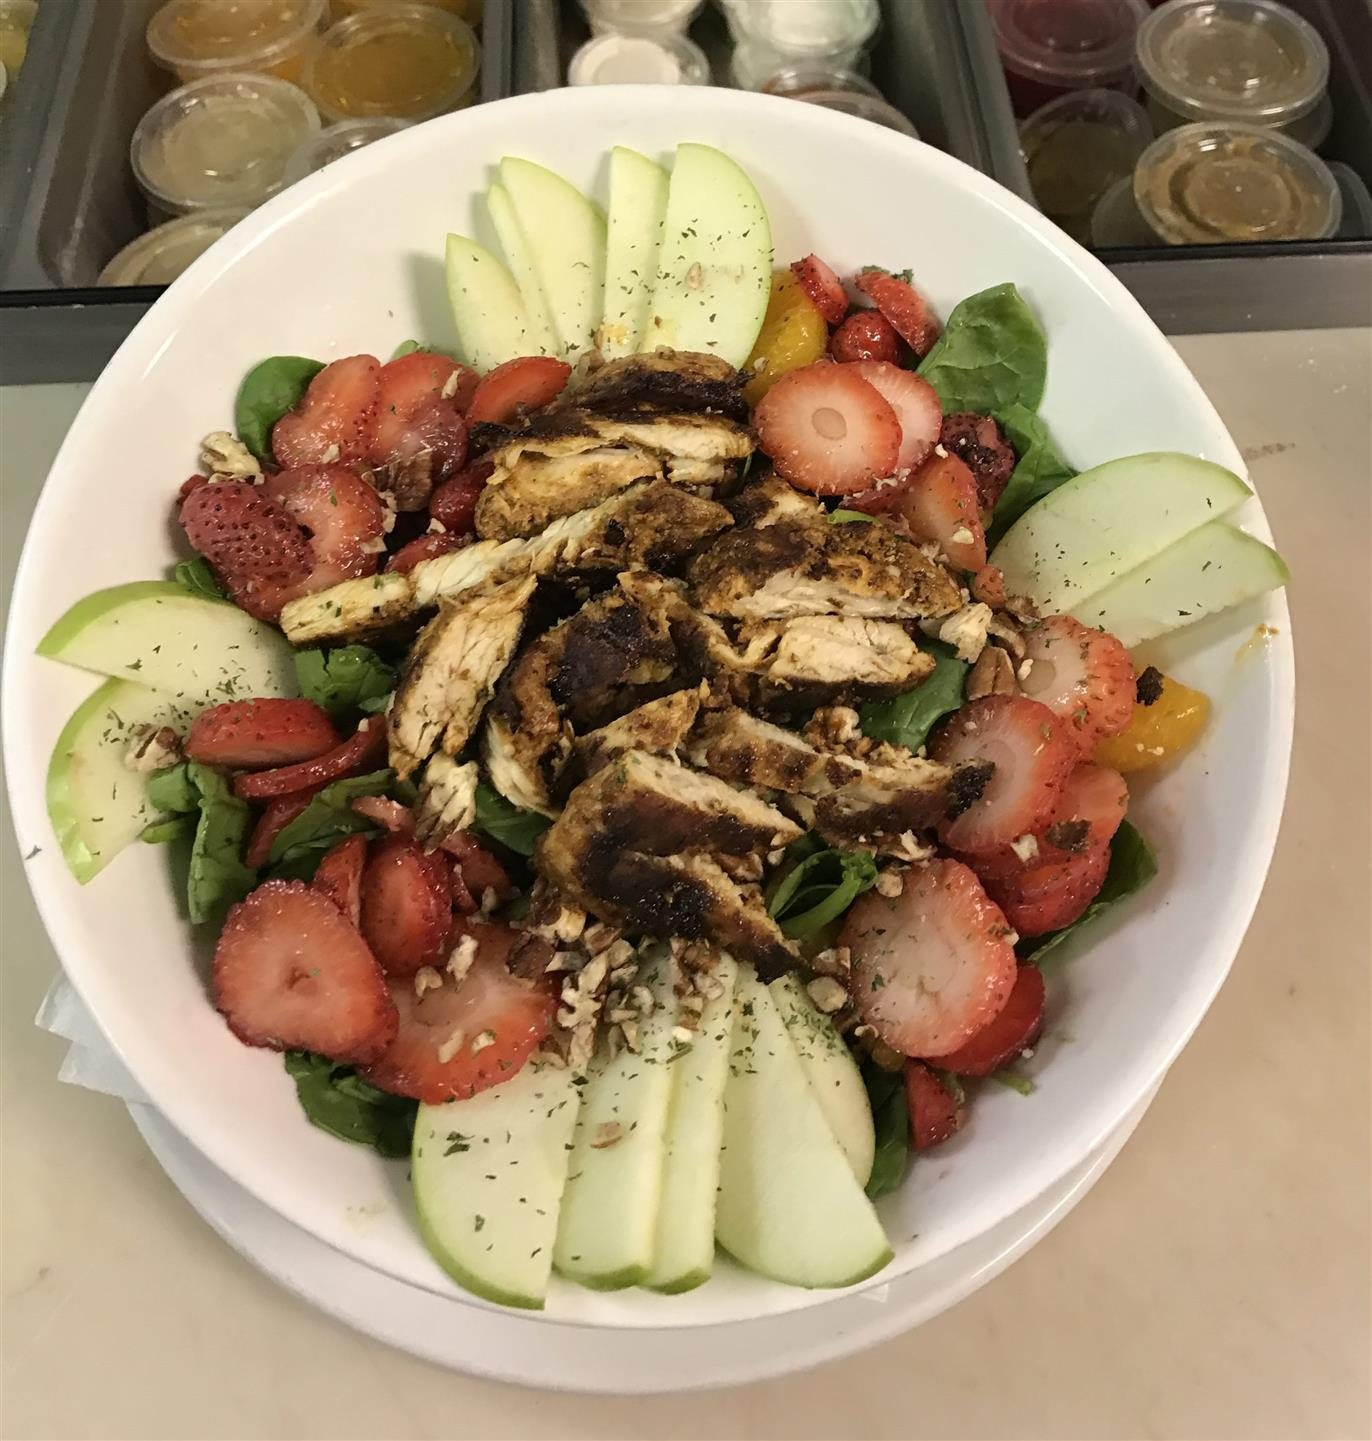 Strawberry Chicken Salad with fresh spinach covered in strawberries, mandarin oranges, green apples, pecans and chicken breast in a white bowl